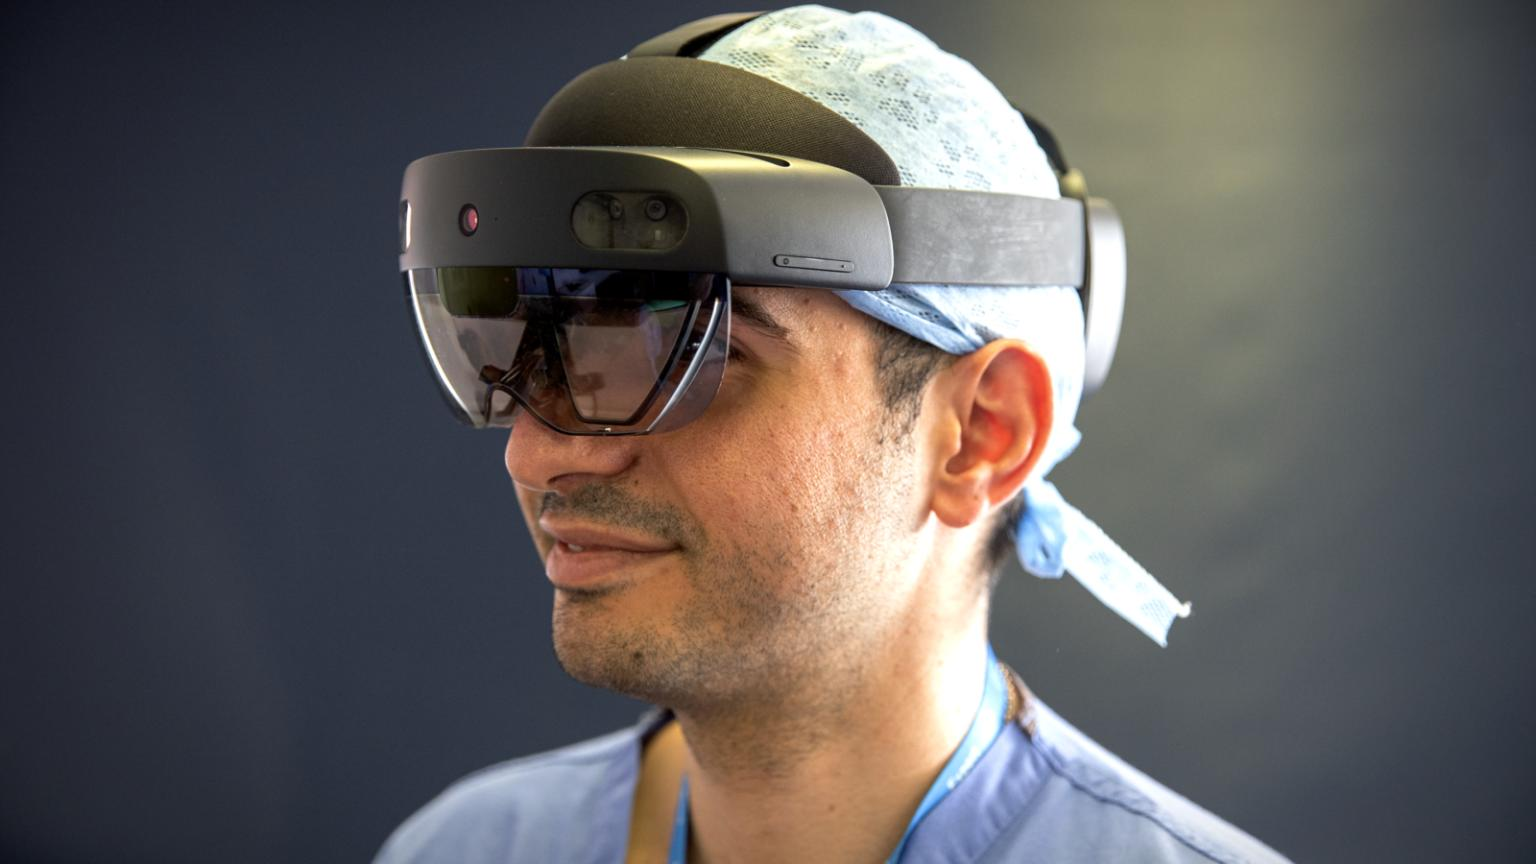 2-hololens_direct_care.jpg